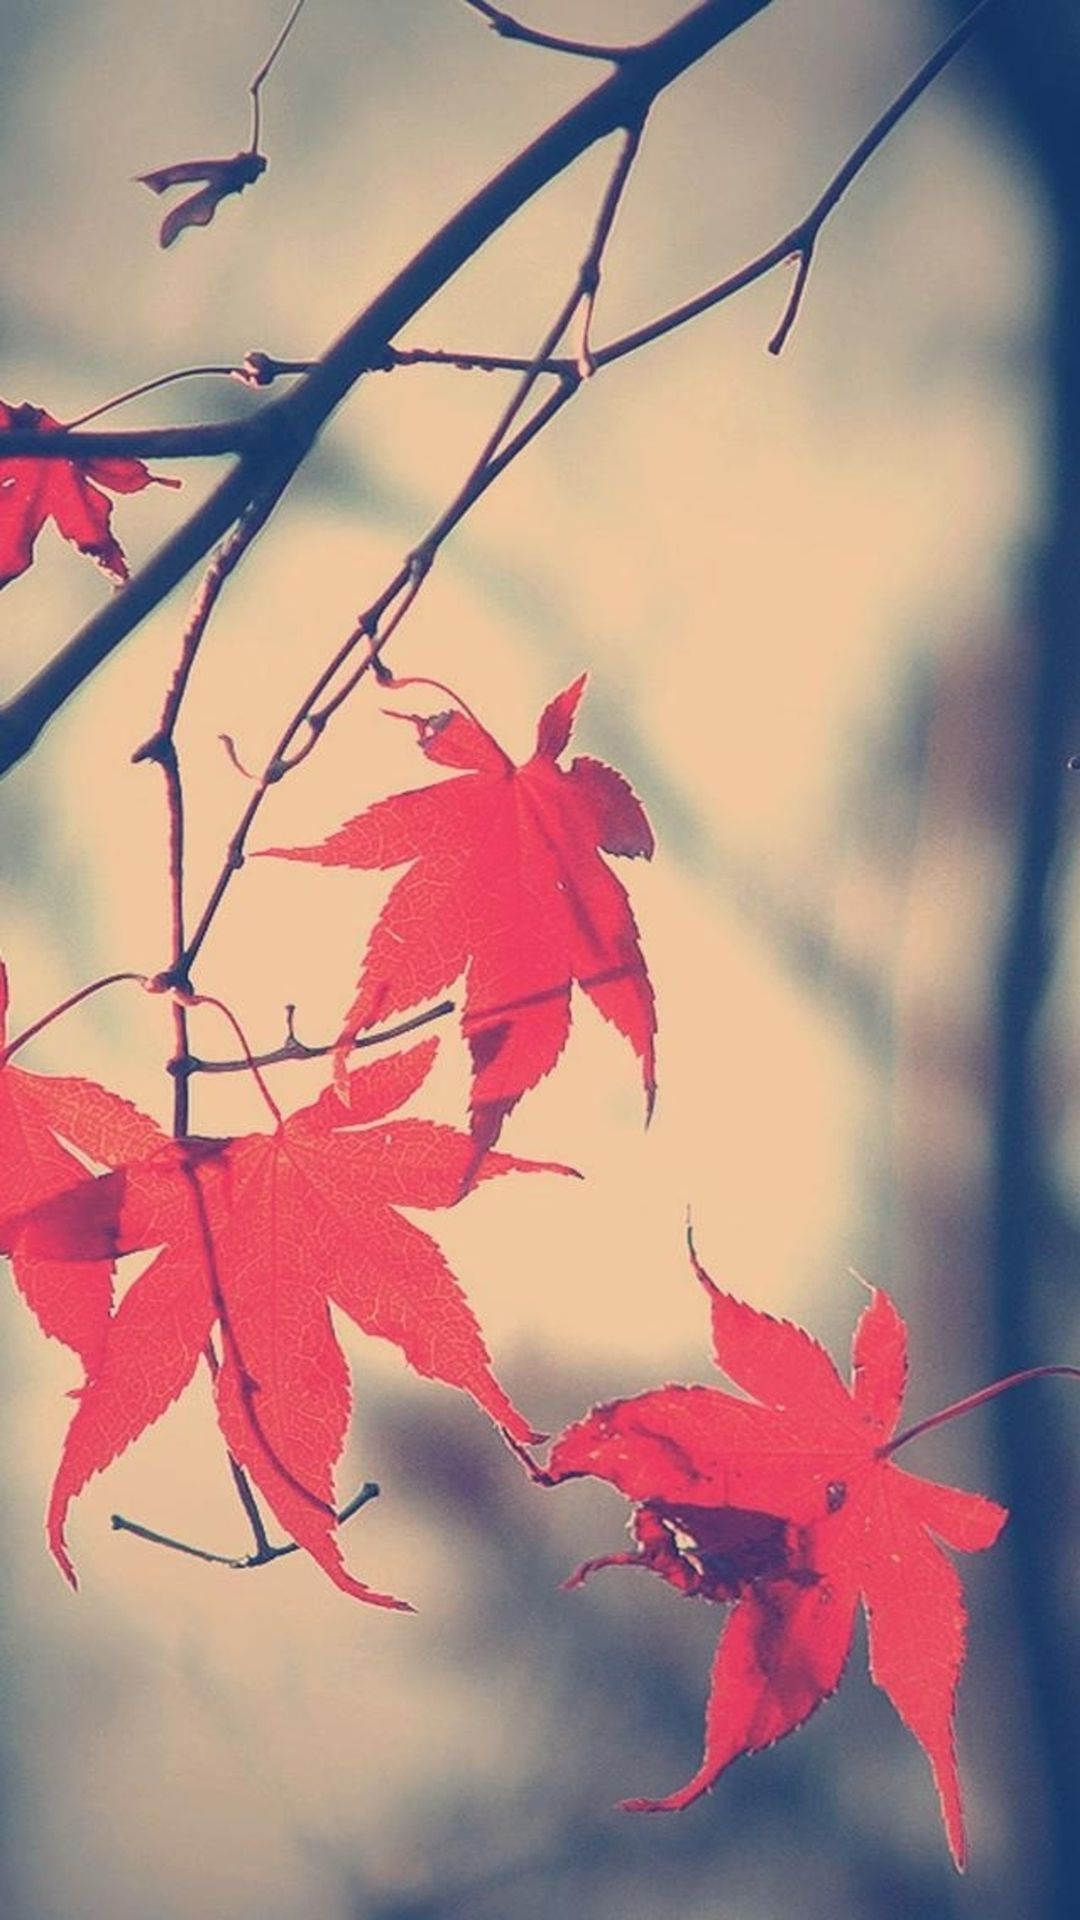 Autumn Romance Maple Leaf Branch IPhone 6 Plus Wallpaper